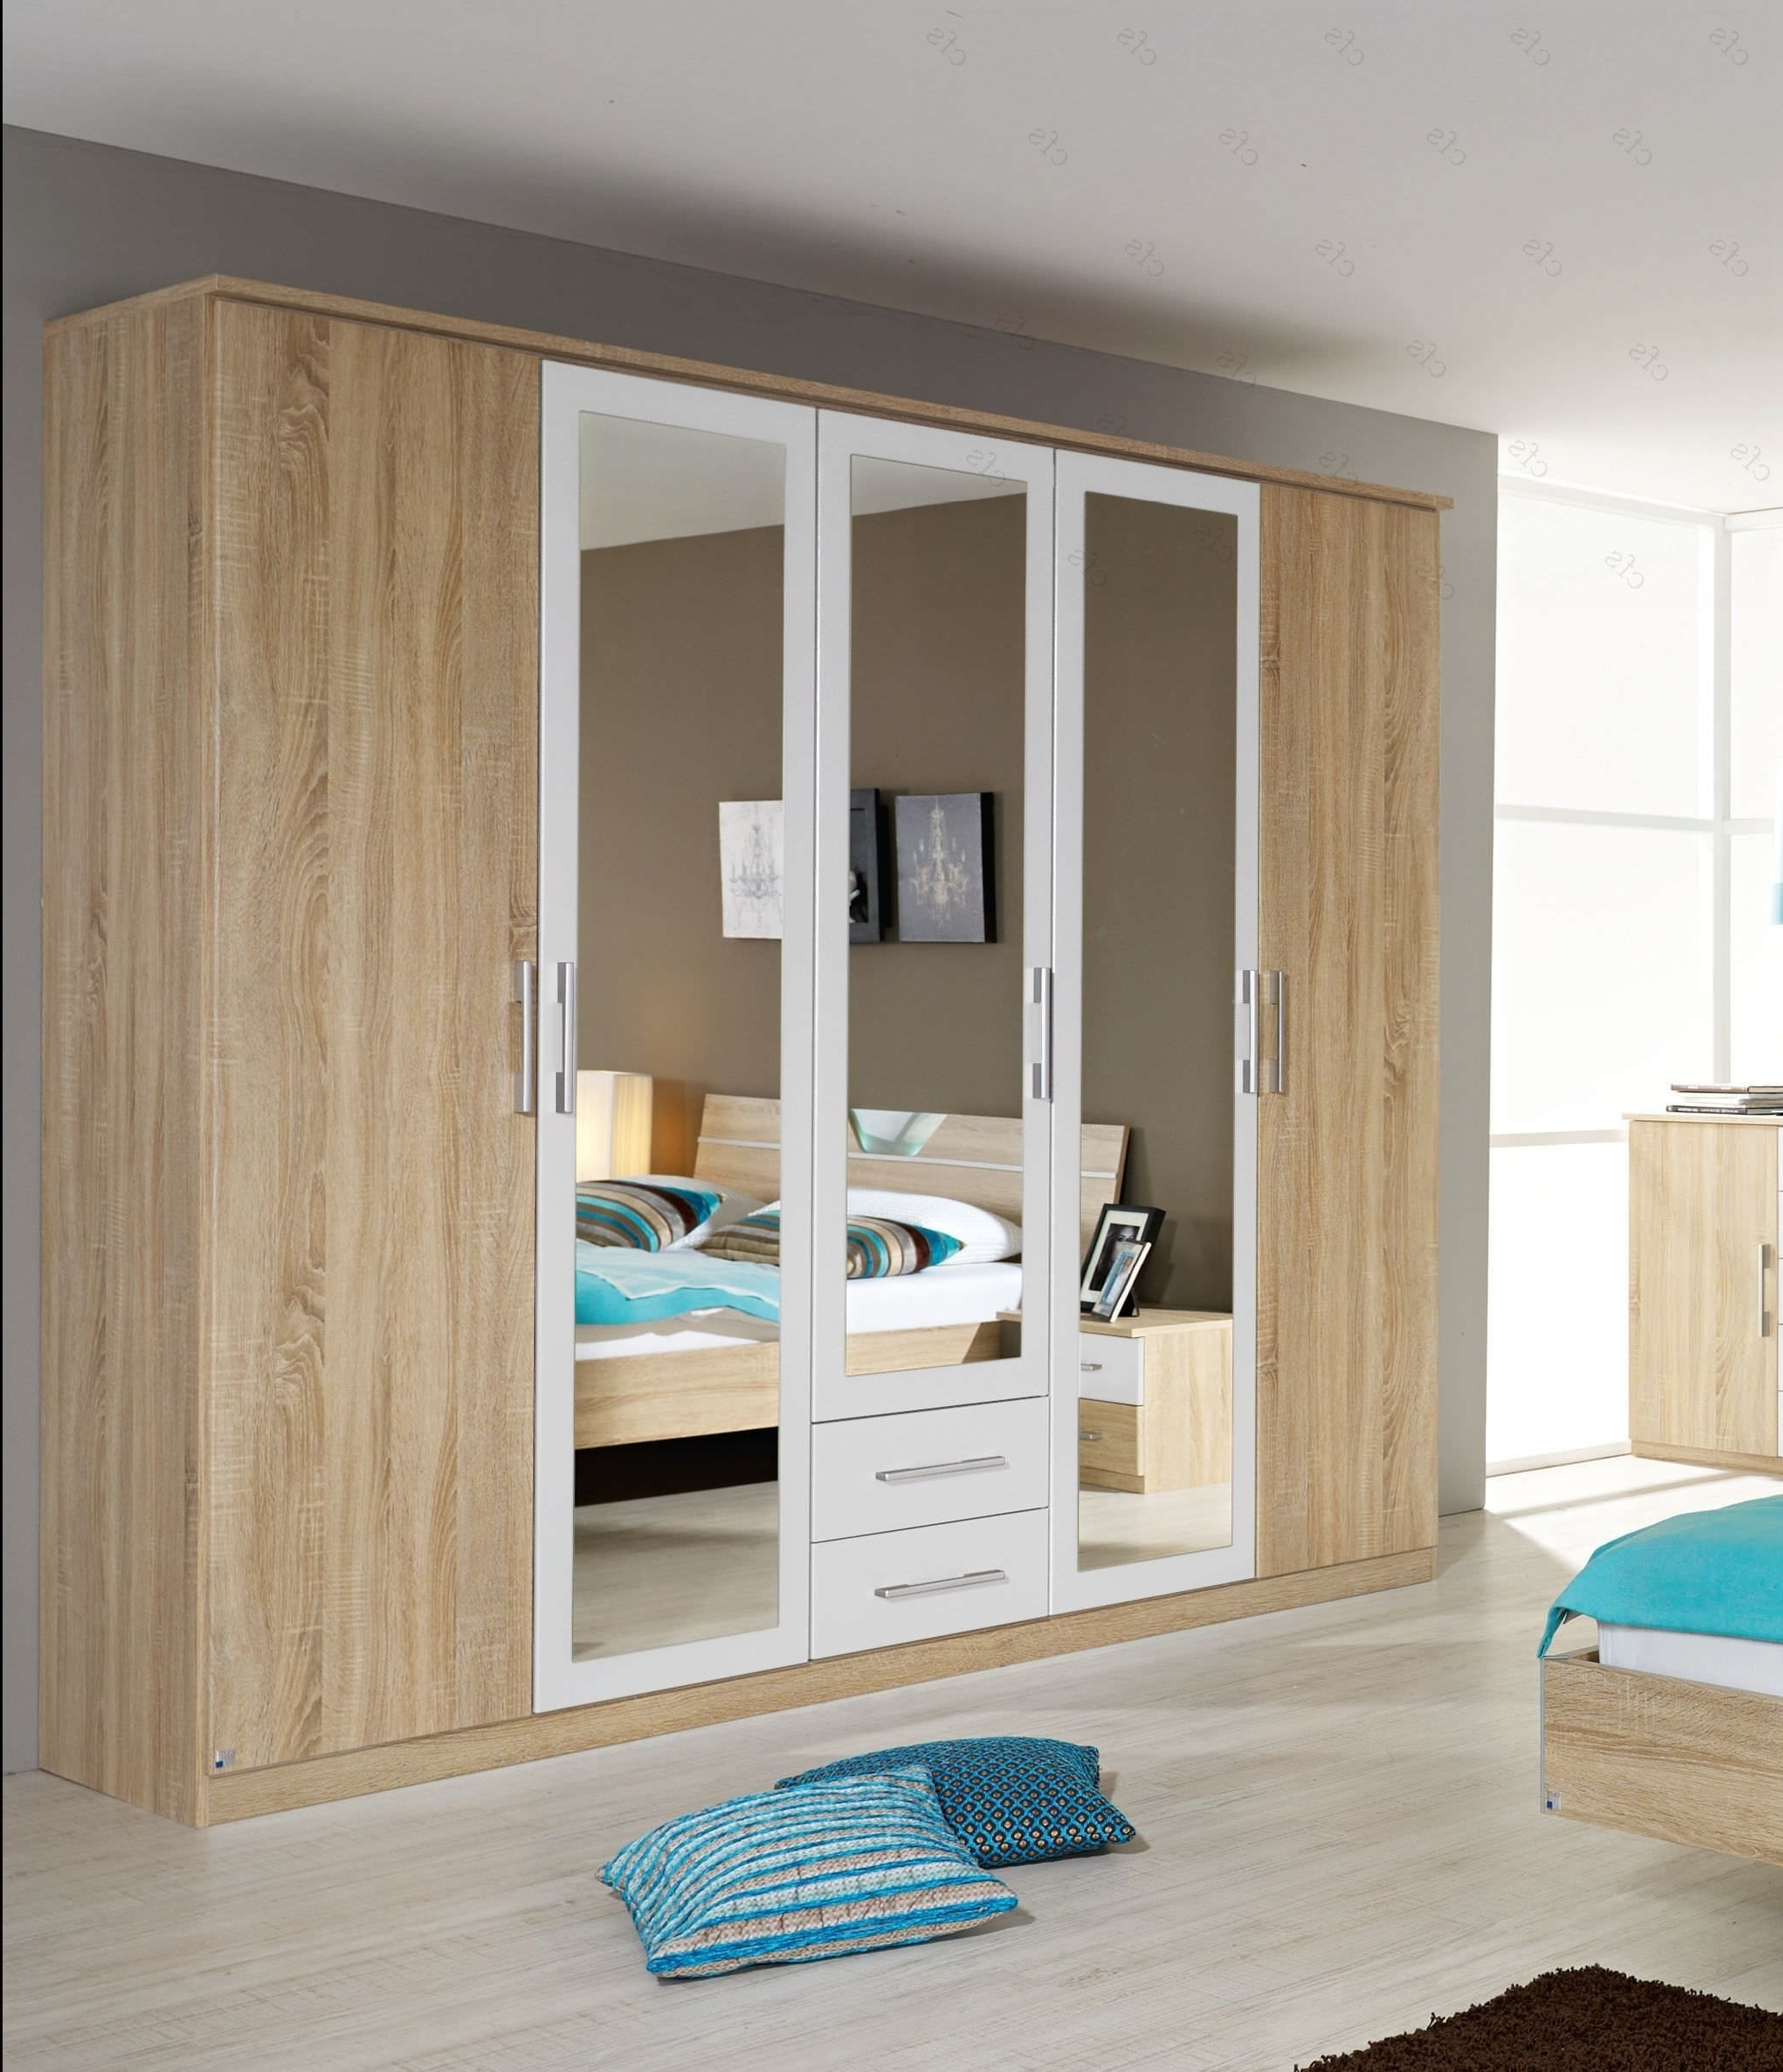 5 Door Wardrobes Bedroom Furniture In Latest 5 Door Wardrobe Bedroom Furniture (View 3 of 15)